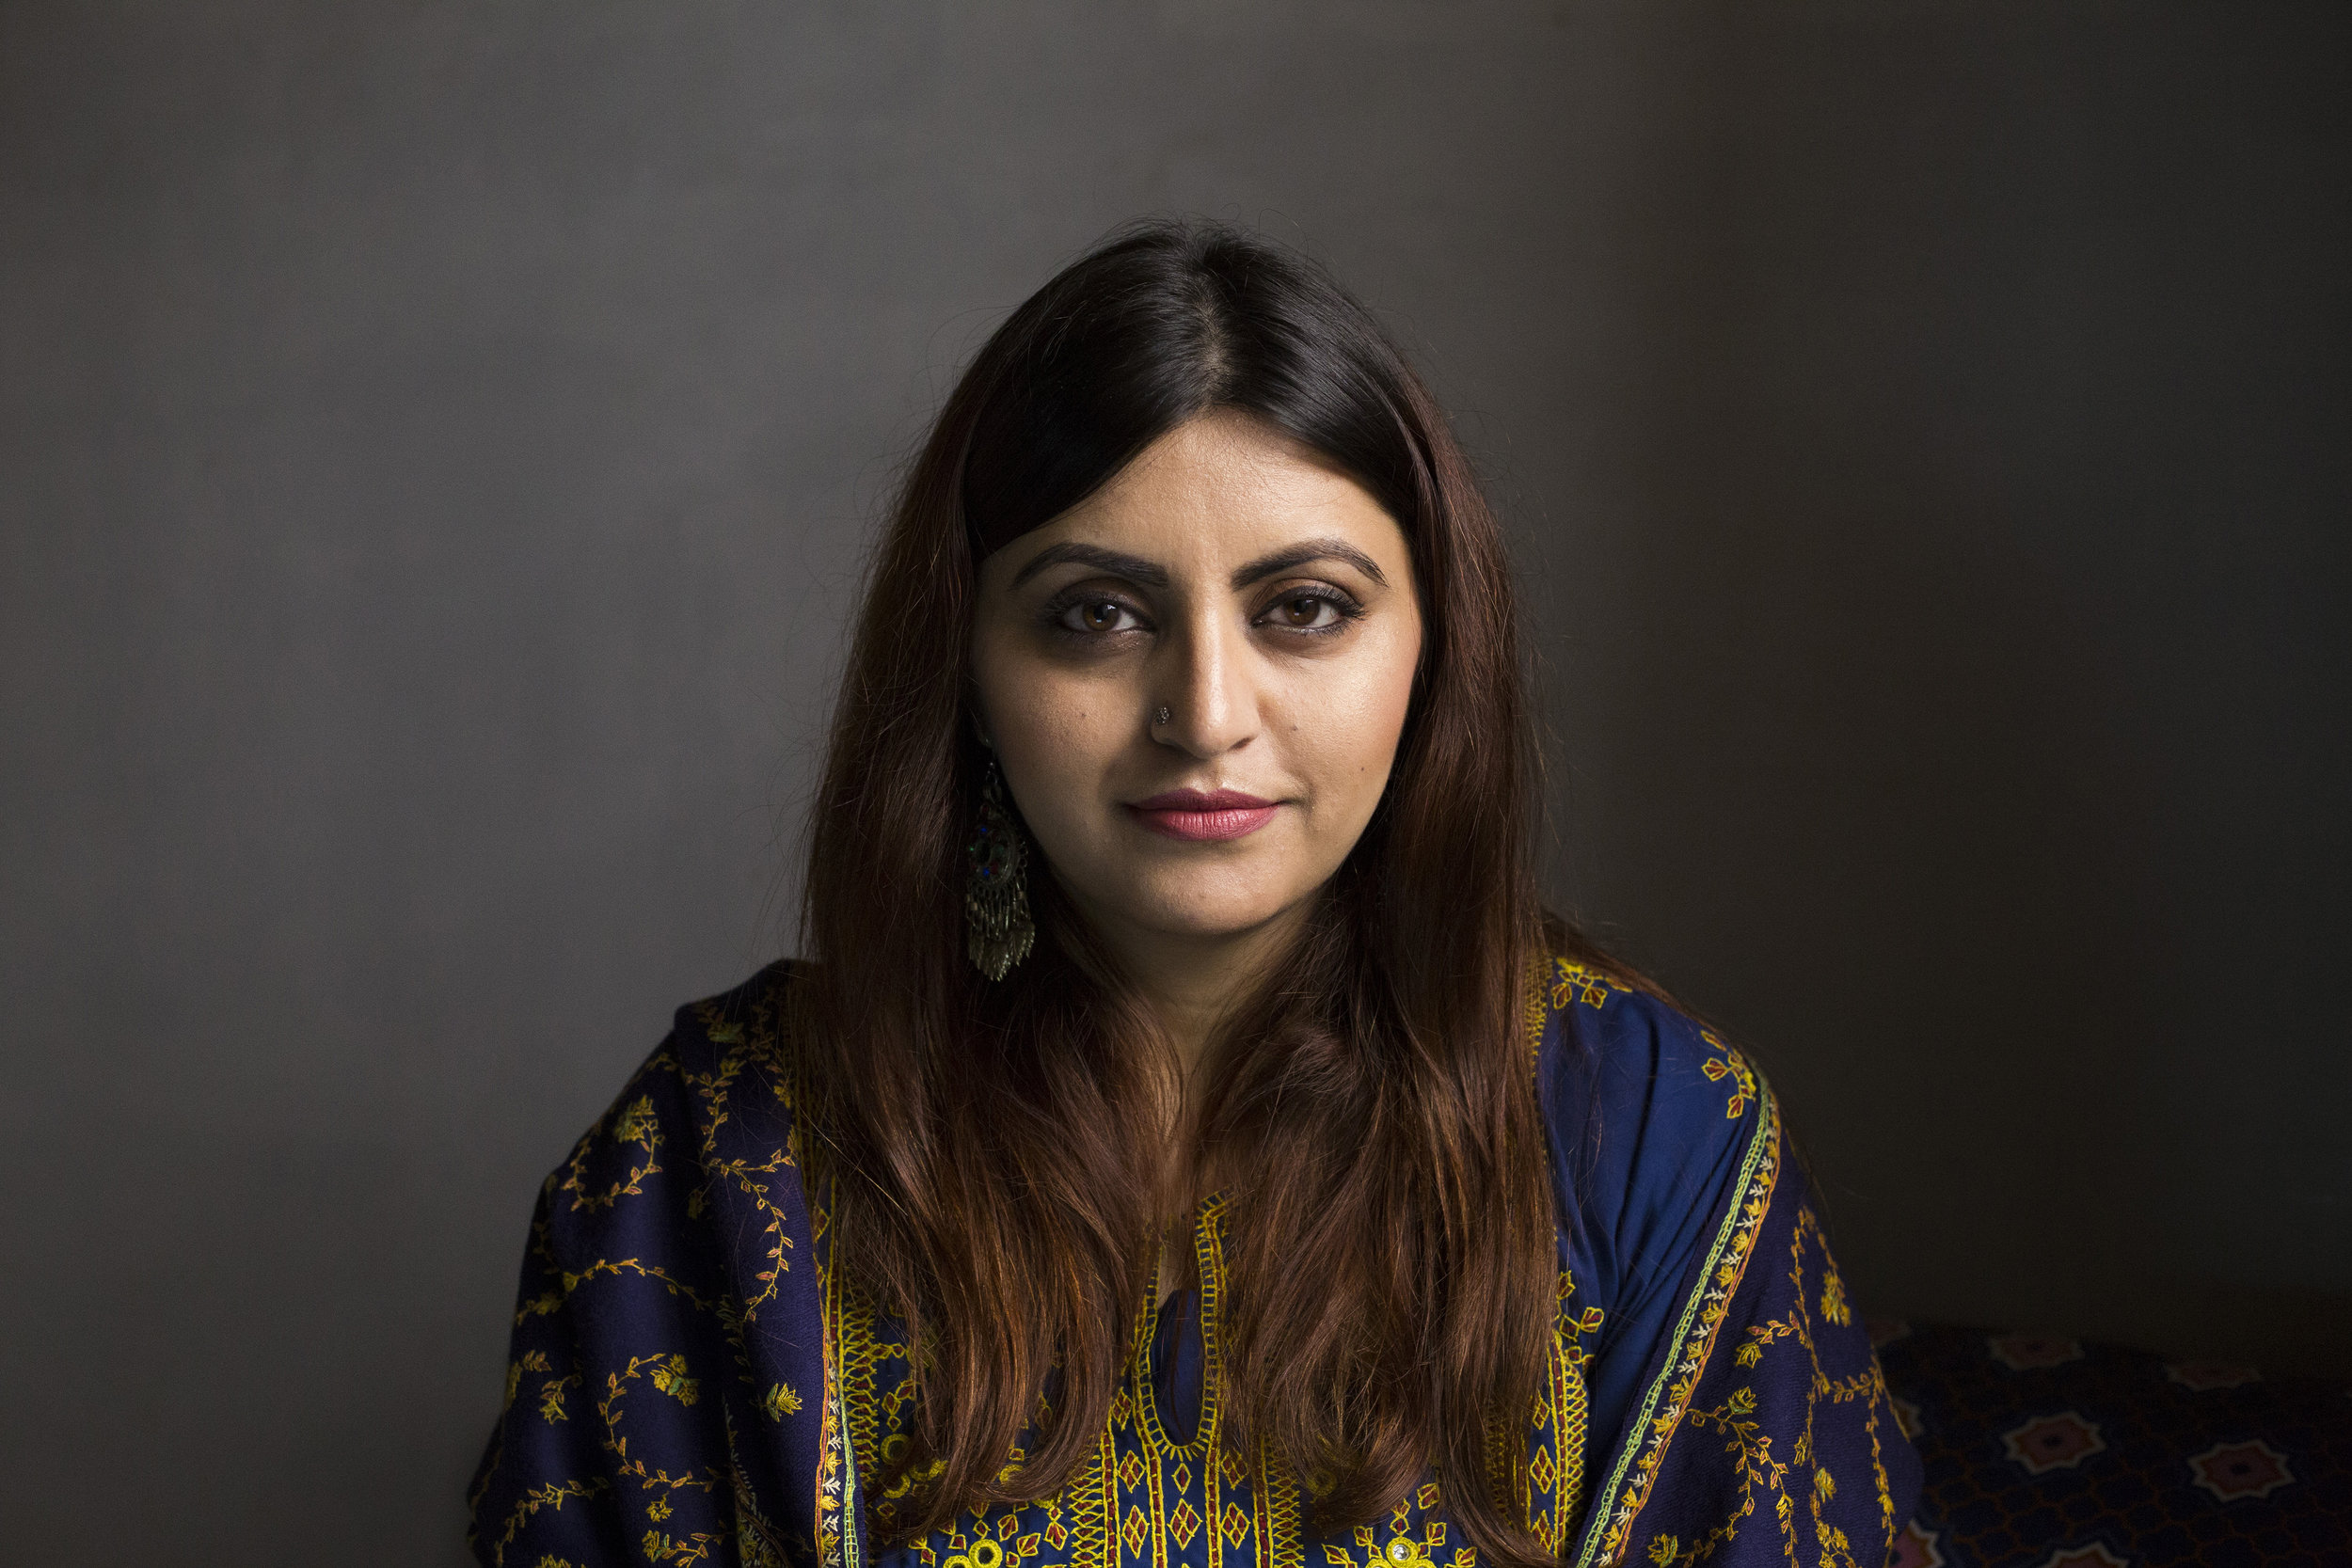 Gulalai Ismail, a human rights activist and chairperson of Aware Girls at her residence on January 11, 2019 in Islamabad, Pakistan.